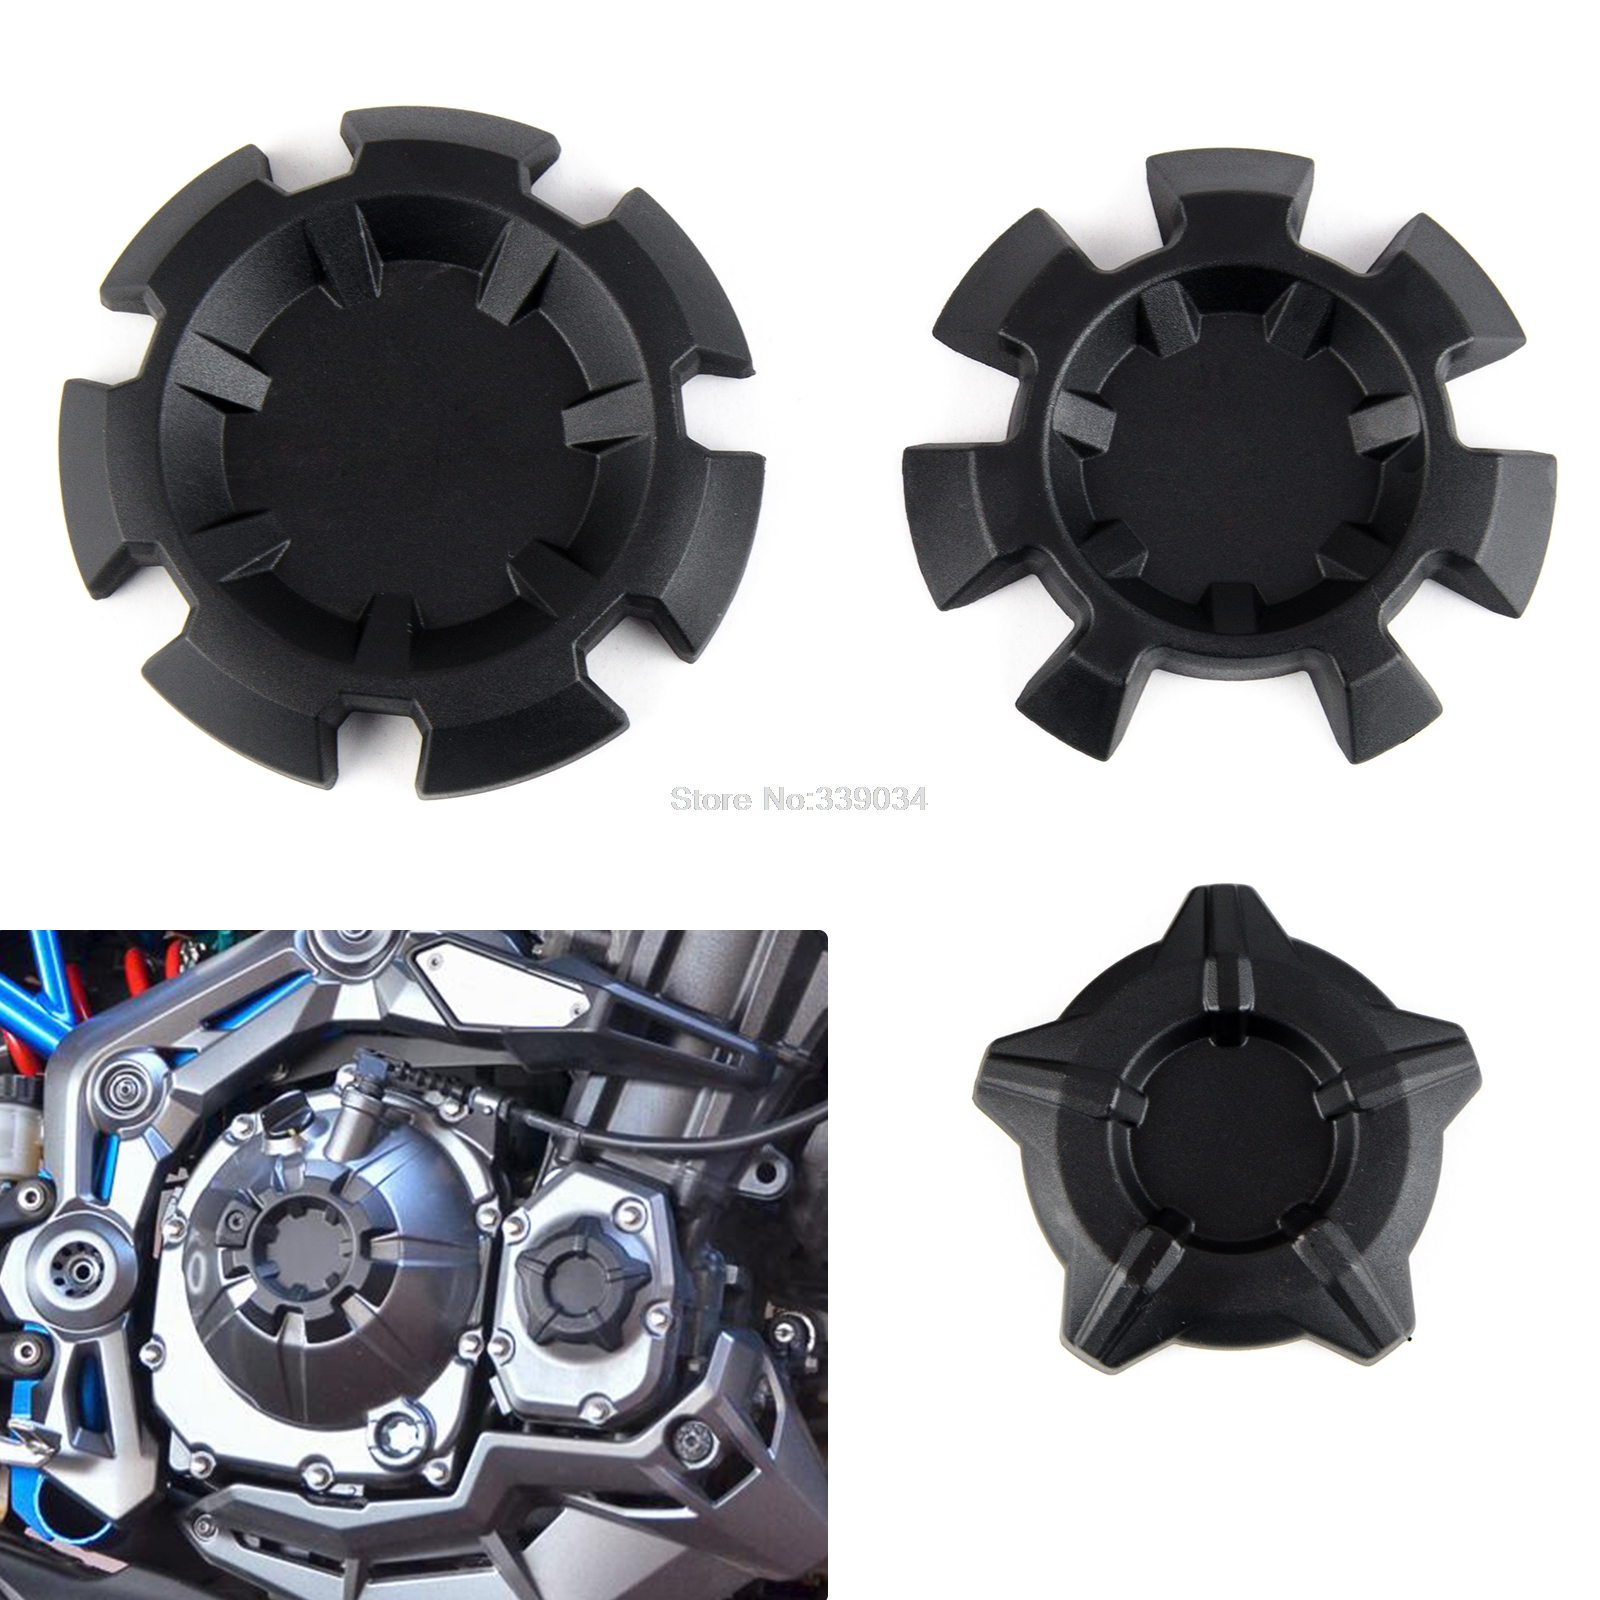 Motorcycle Engine Cover Protector Case Engine Timing Oil Filter Cover For Kawasaki Z900 ABS Z 900 2017 2018 Black engine oil filter cap screws for kawasaki z1000 z800 motorcycle accessories